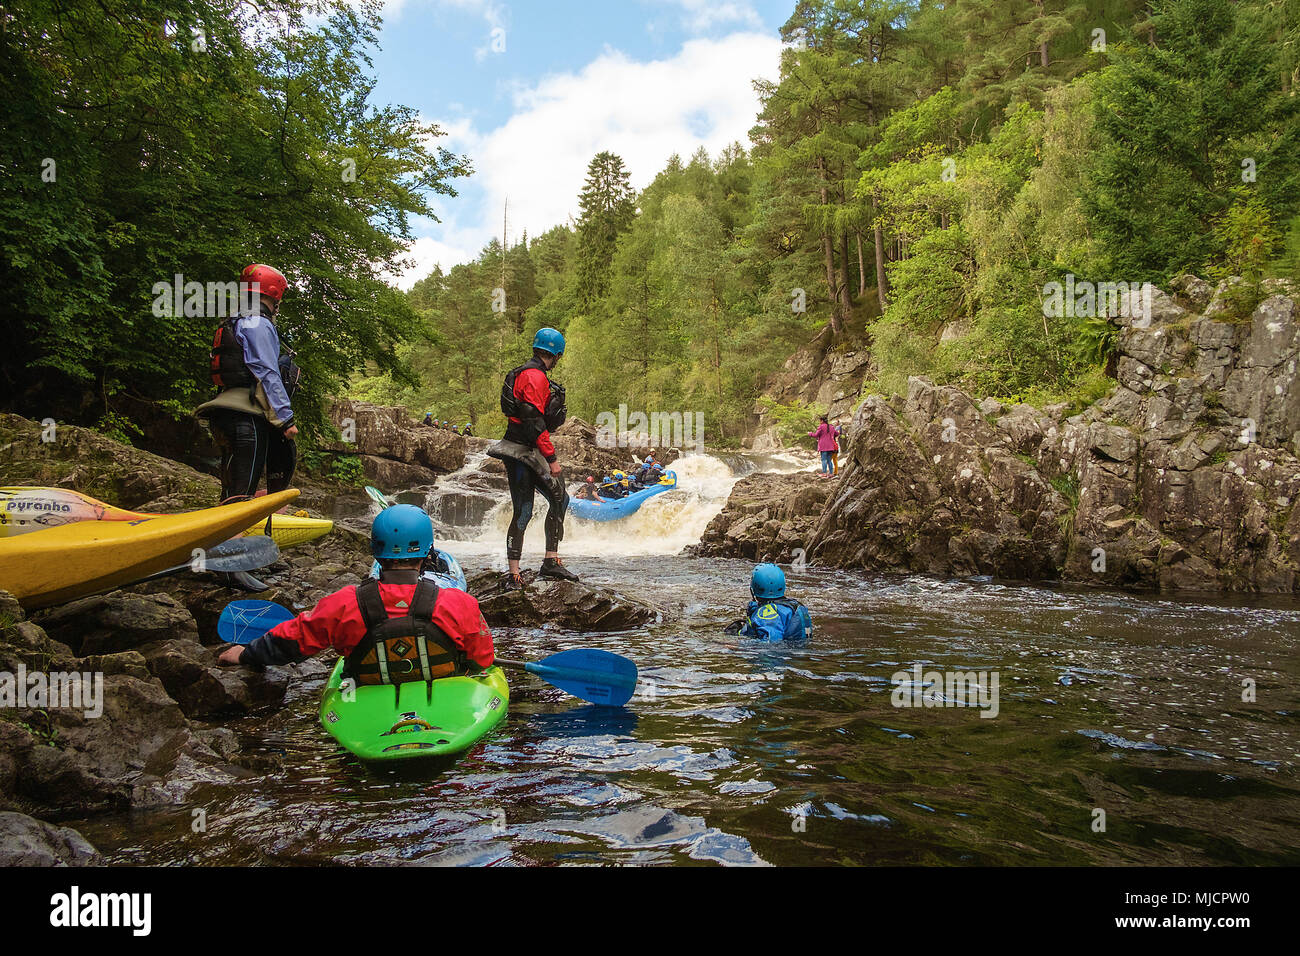 With the kayak on the Loch Dunmore, Pitlochry, Tayside, Scotland, - Stock Image